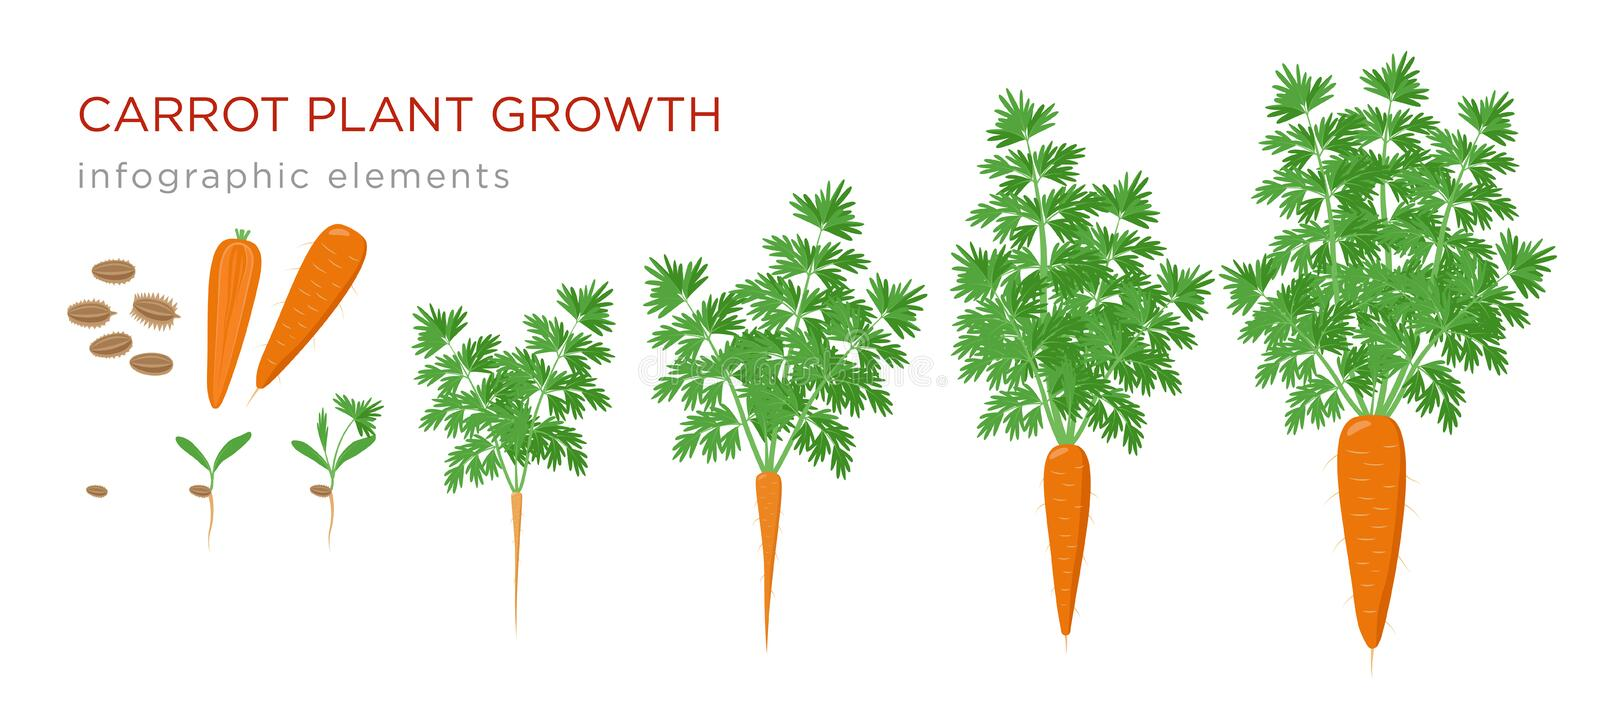 Carrot plant growth stages infographic elements. Growing process of carrot from seeds, sprout to mature taproot, life vector illustration